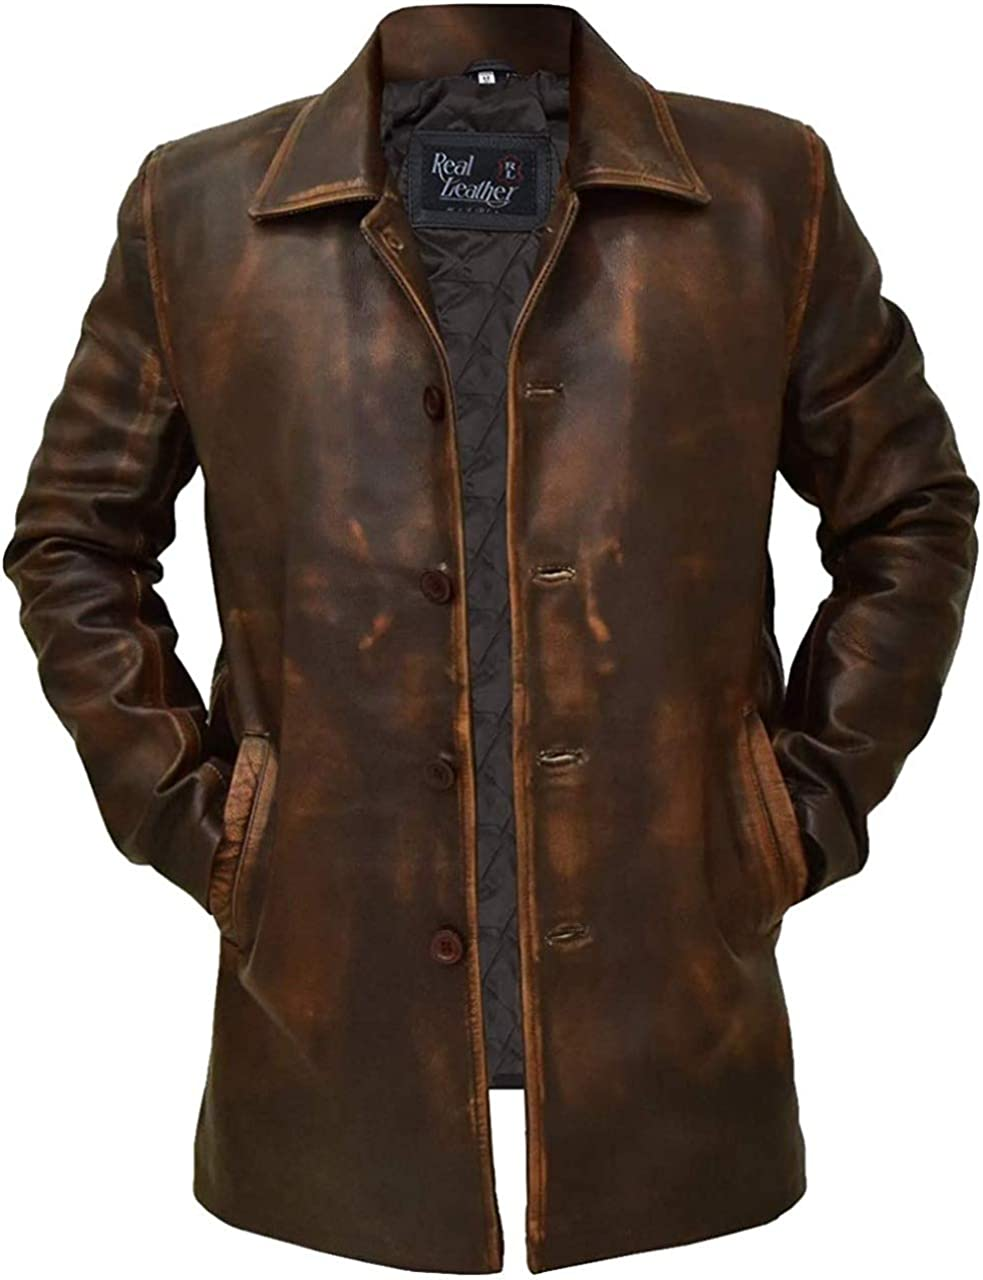 Gifts Mens Western Cow Boy Soft Distressed Sales for sale Trench Brown Coat Vintage